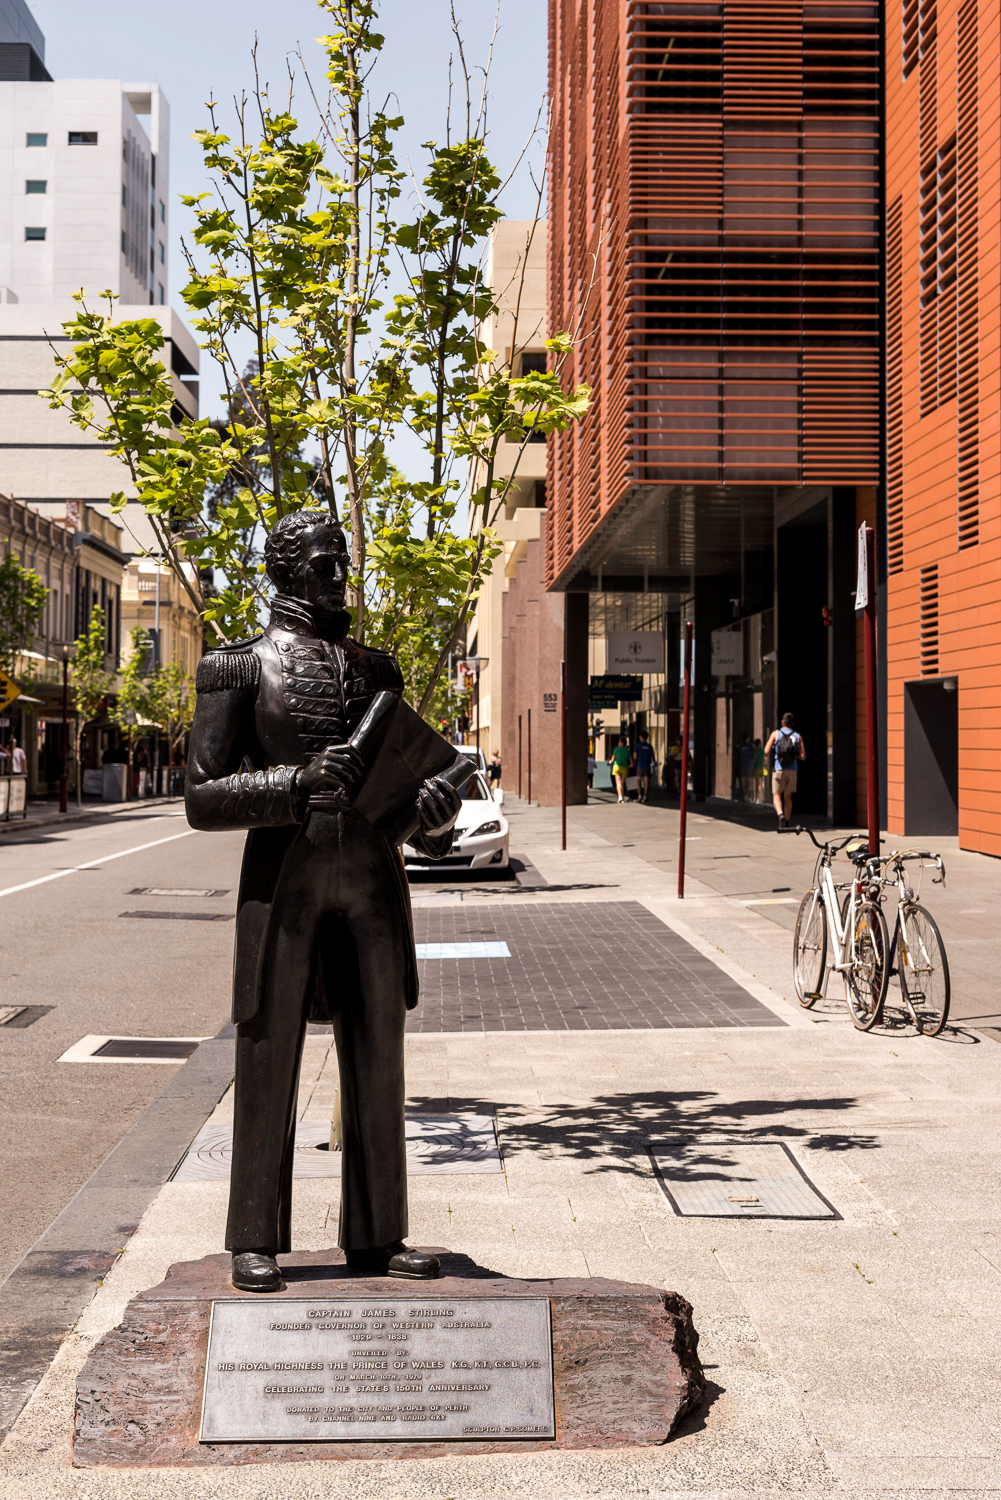 Captain James Stirling (1979) - Artist Clement P SomersCity of Perth Library, 573 Hay Street Hay StreetThis statue of Captain James Stirling was created in 1979 to celebrate Western Australia's 150th anniversary.Sir James Stirling (28 January 1791 – 22 April 1865) was a British naval officer and colonial administrator. His enthusiasm and persistence persuaded the British Government to establish the Swan River Colony and he became the first Governor and Commander-in-Chief of Western Australia.